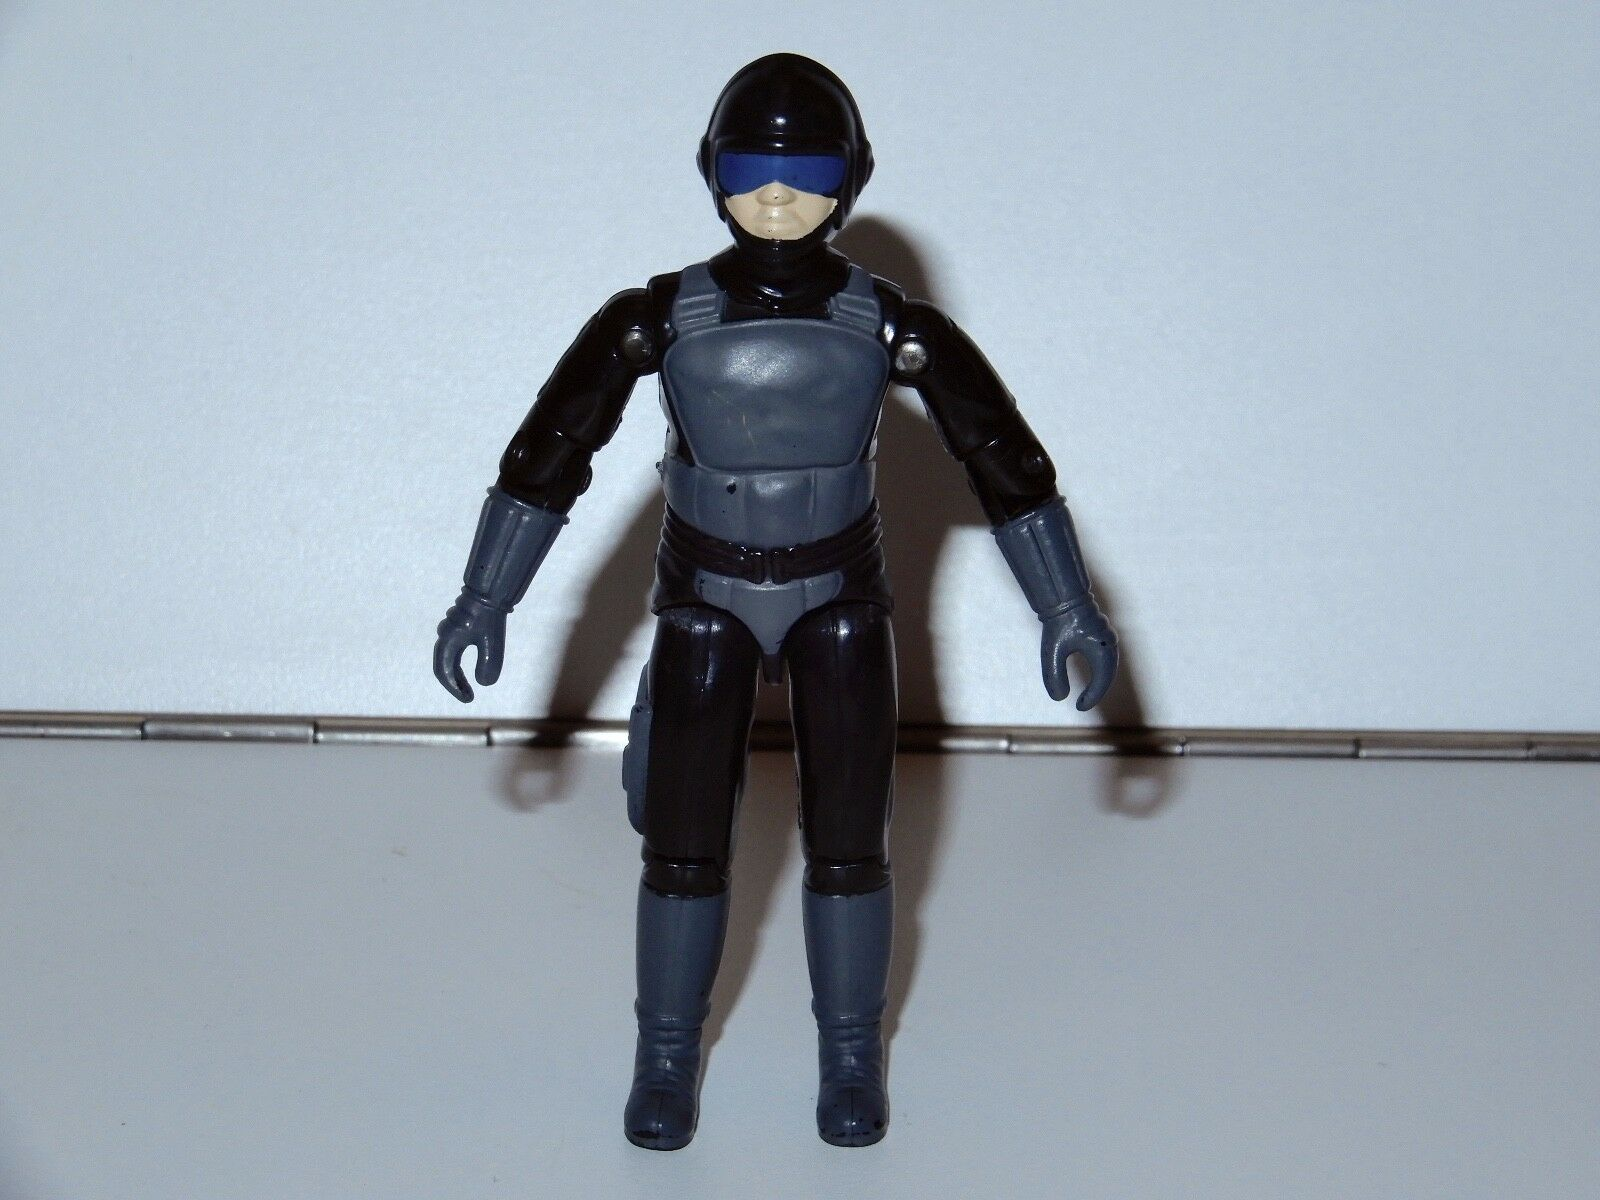 1983 GI JOE   ACTION FORCE SAS BLADES 100% COMPLETE C9 - PALITOY UK